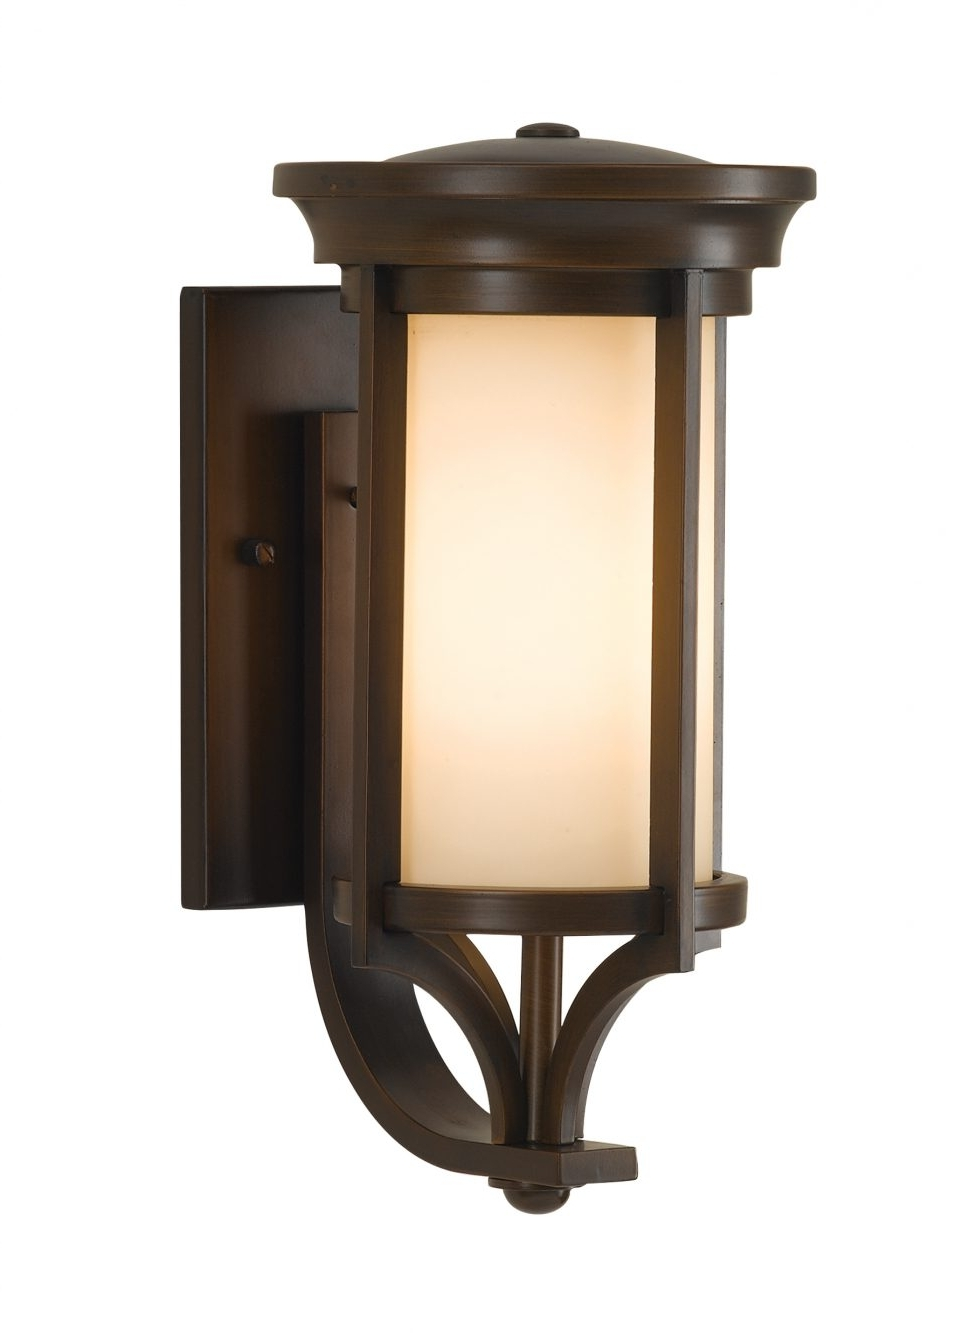 Outdoor Ceiling Light Fixture With Outlet Throughout Newest Electrical Wiring : Guiding Outdoor Ceiling Light Fixture With (View 15 of 20)